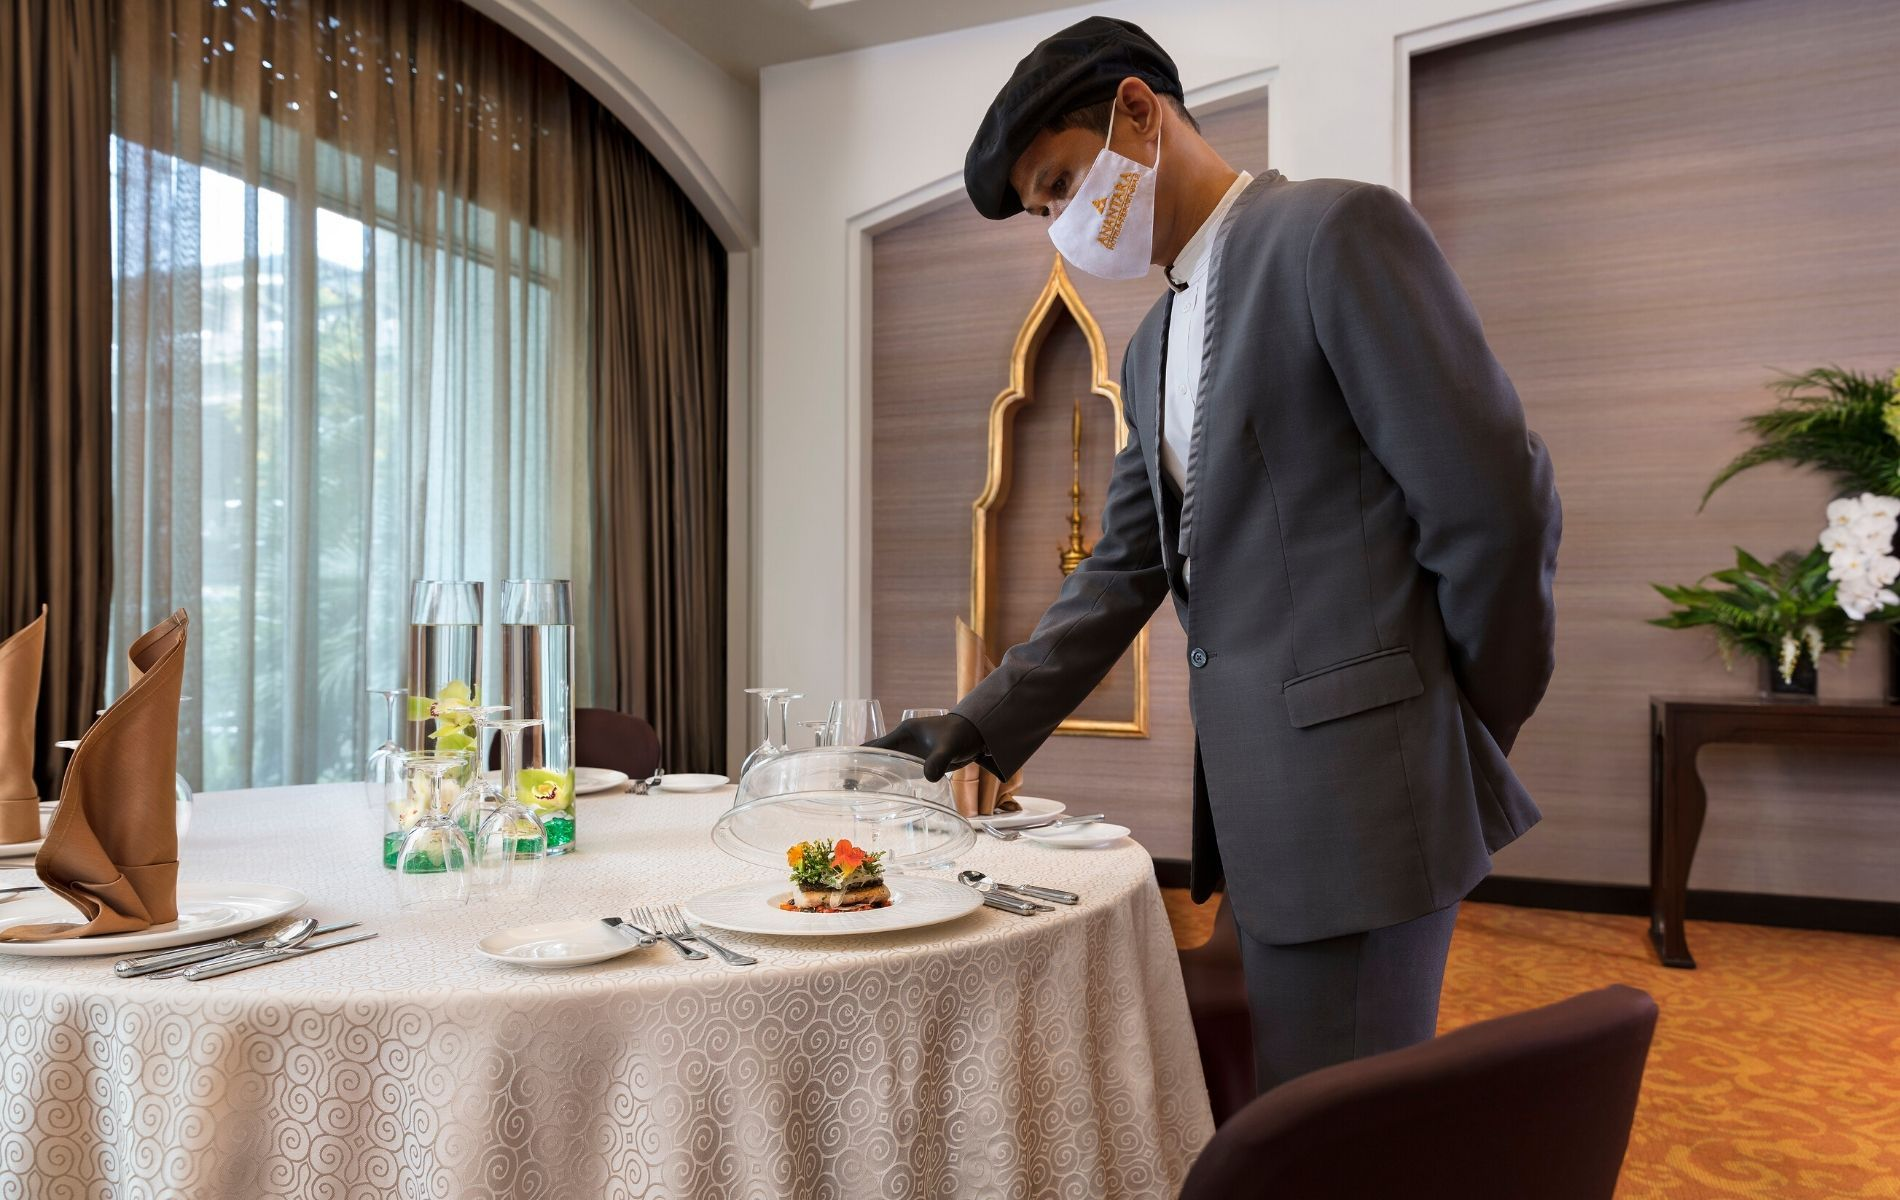 What A Stay At Luxury Hotels & Resorts Will Look Like Post-Pandemic